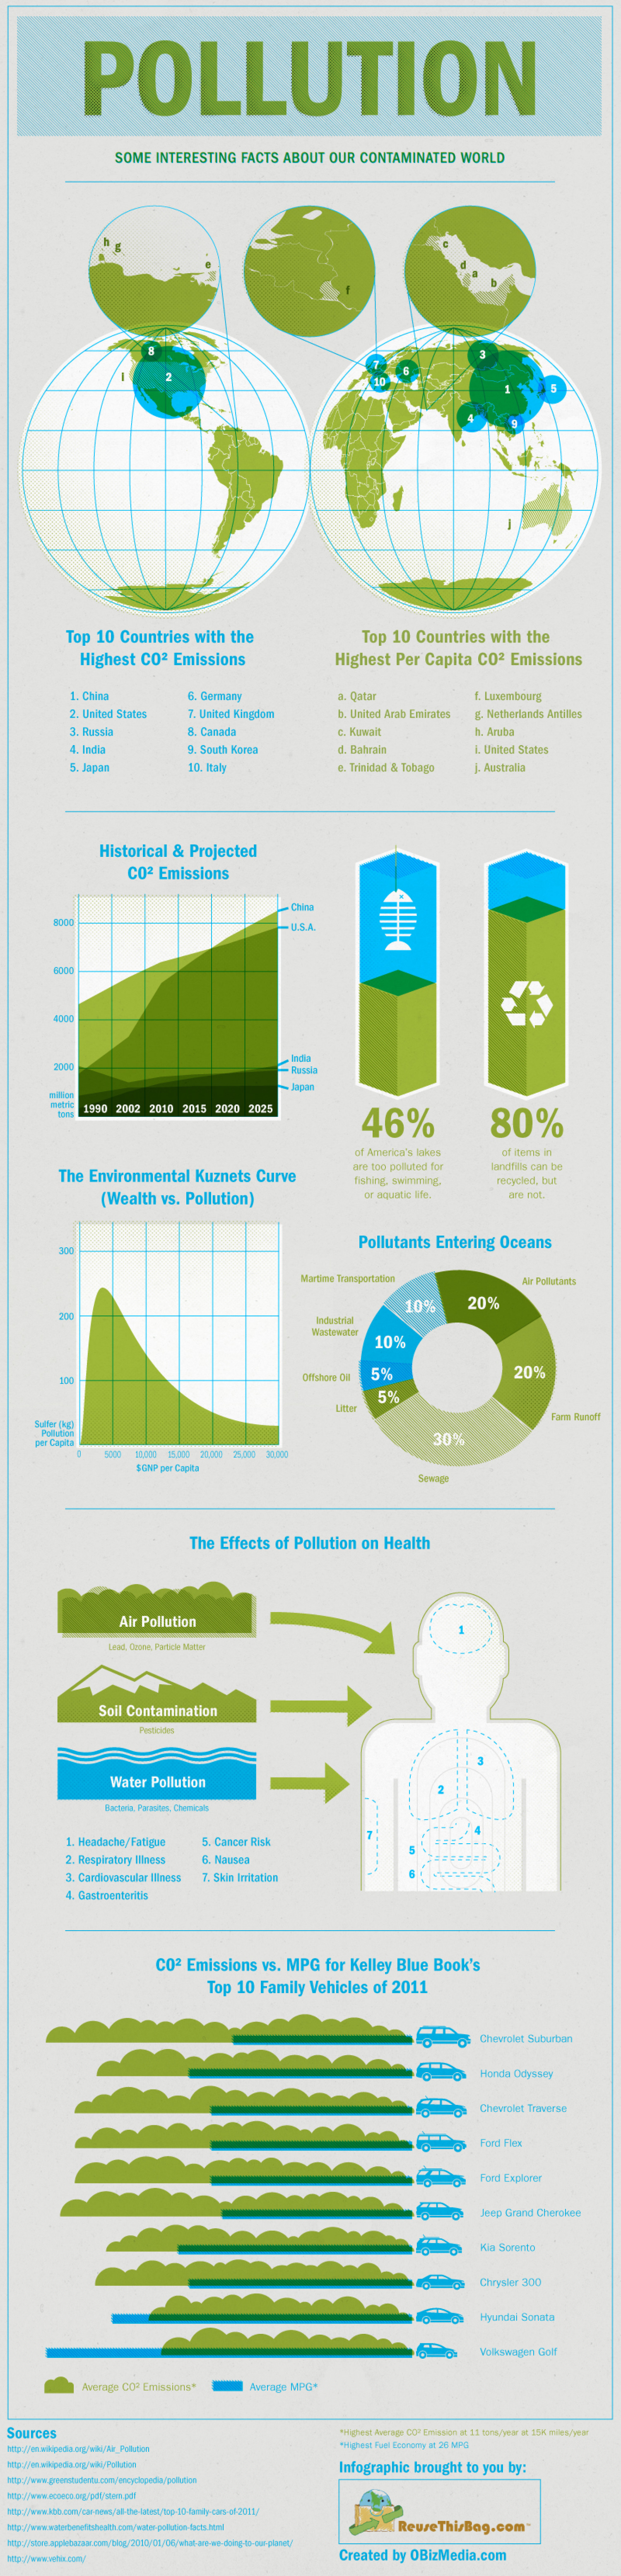 CO2 Emissions & Pollution Infographic